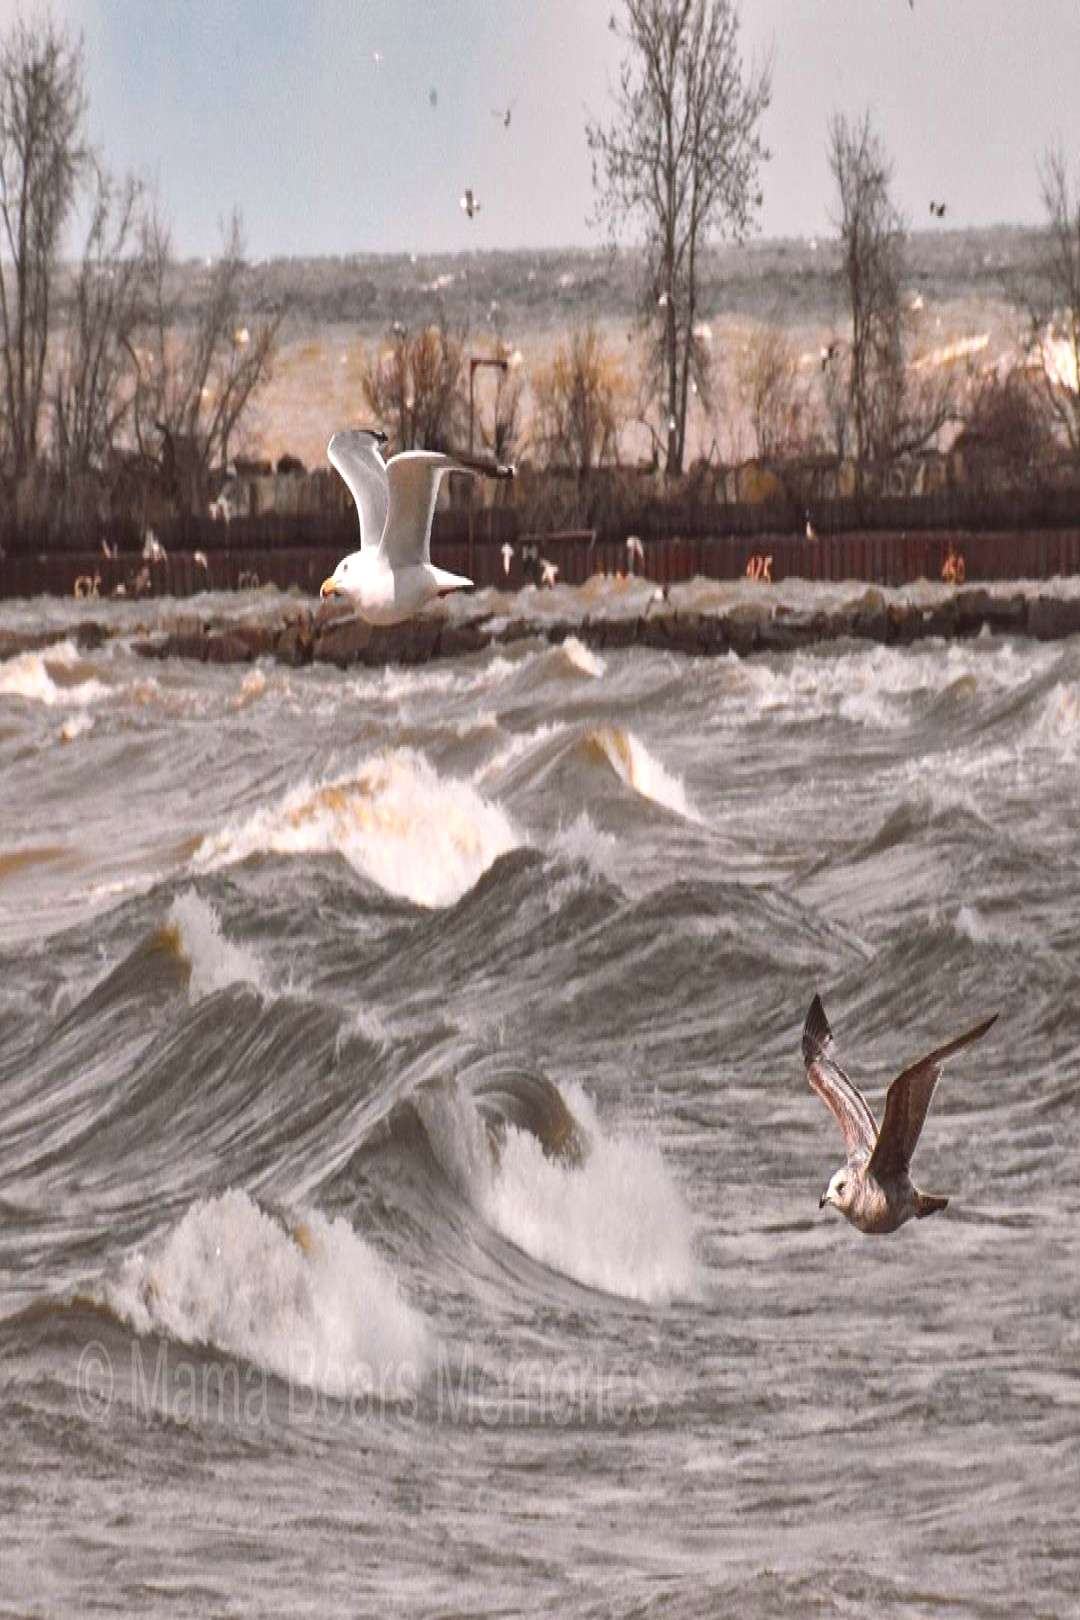 Jill Halasz on April 21 2020 seagulls sky water outdoor and natur